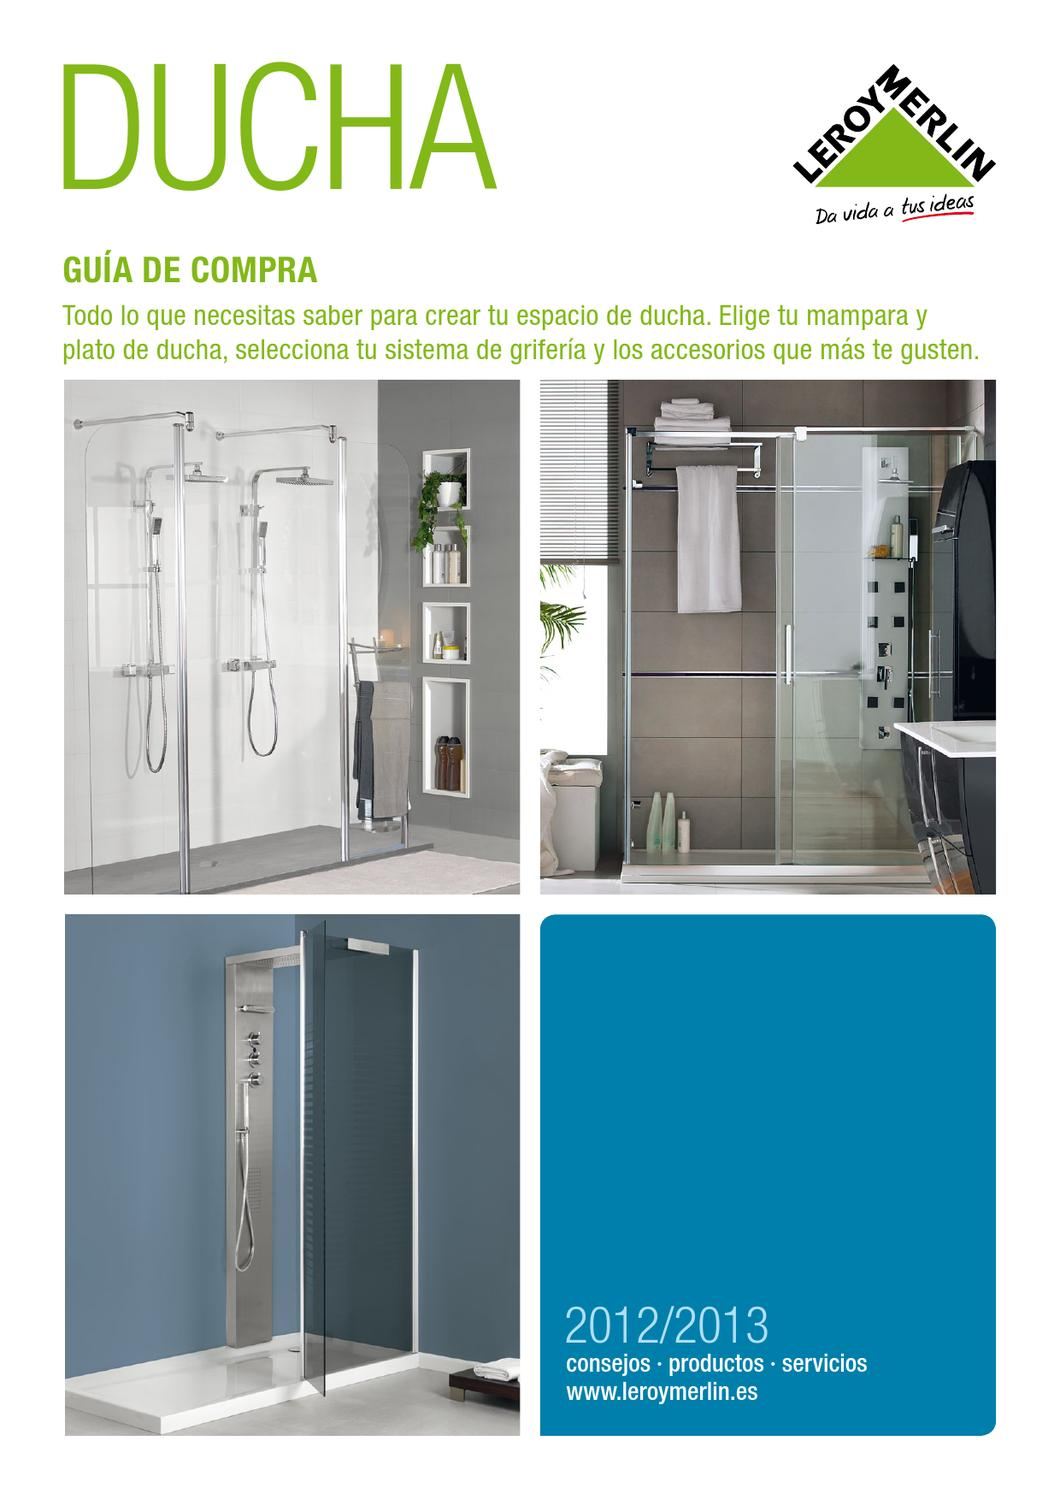 Leroy Merlin Catalogo de duchas 2013 by Hackos ECC - issuu